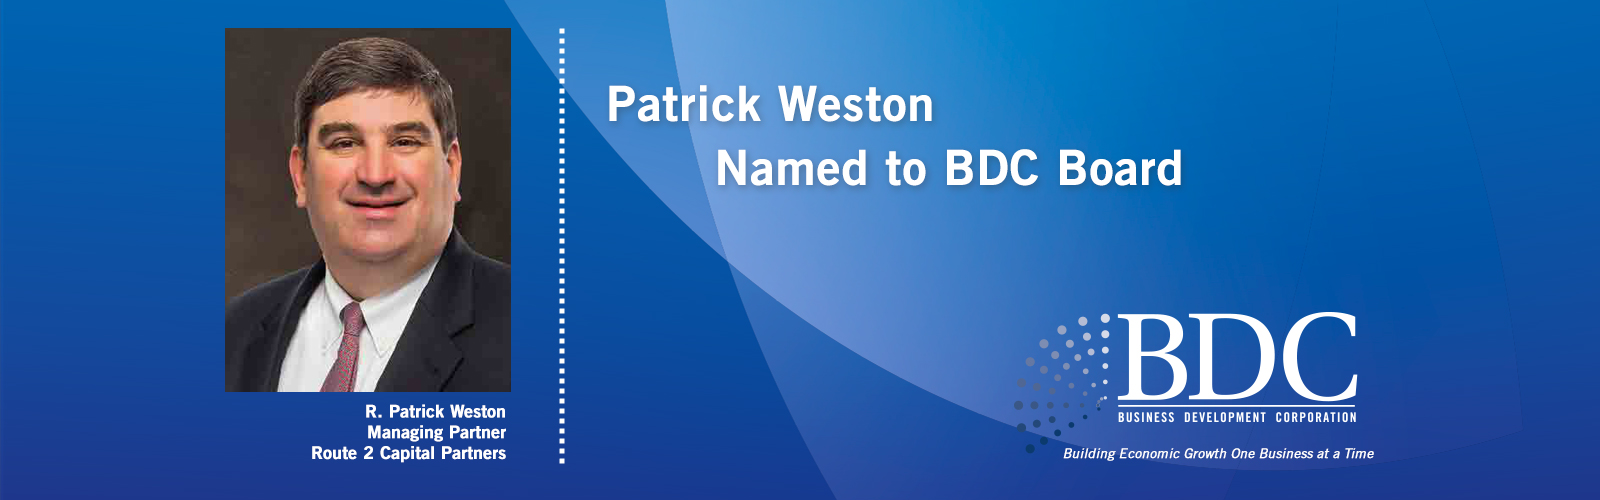 Patrick Weston Named to BDC Board